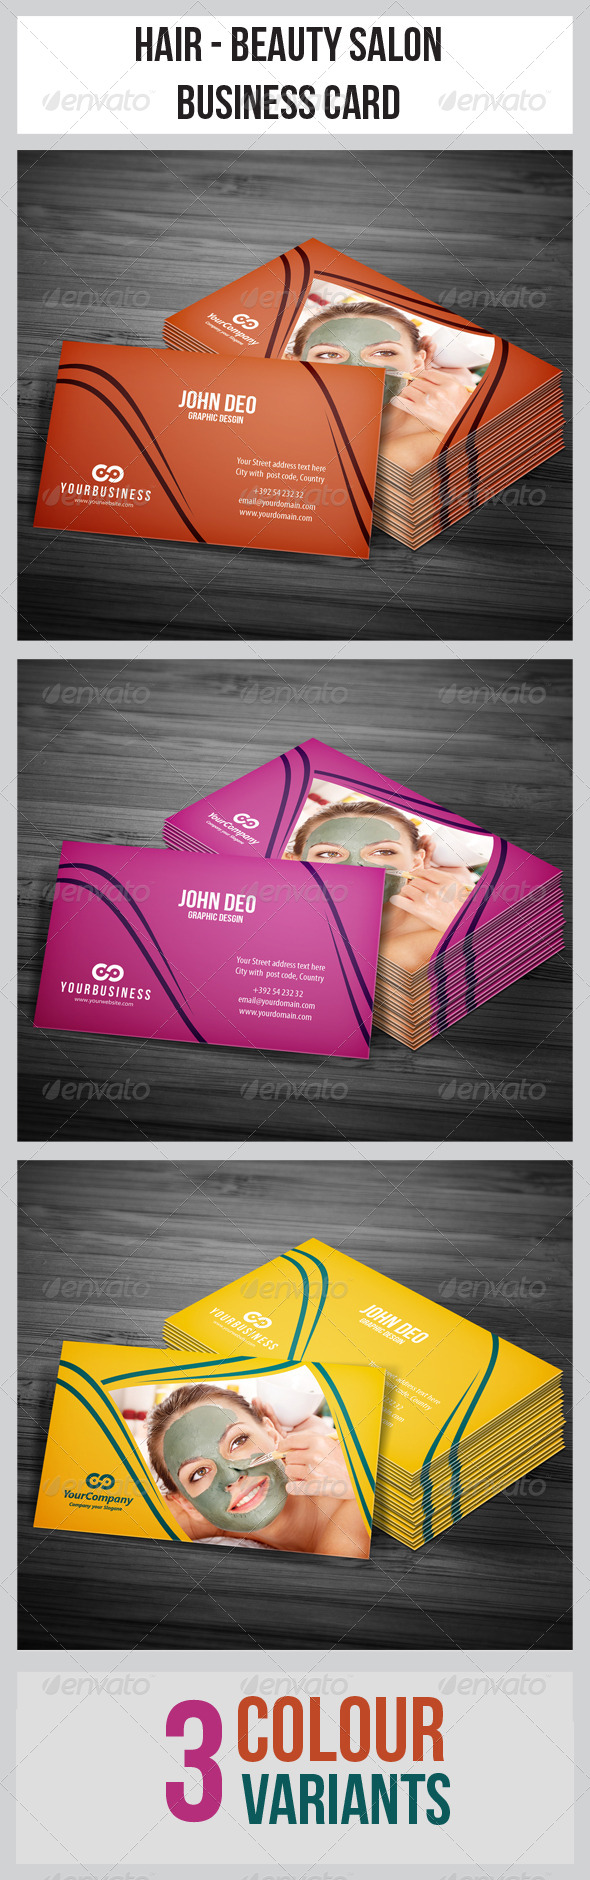 Hair & Beauty Salon Business Card - Industry Specific Business Cards